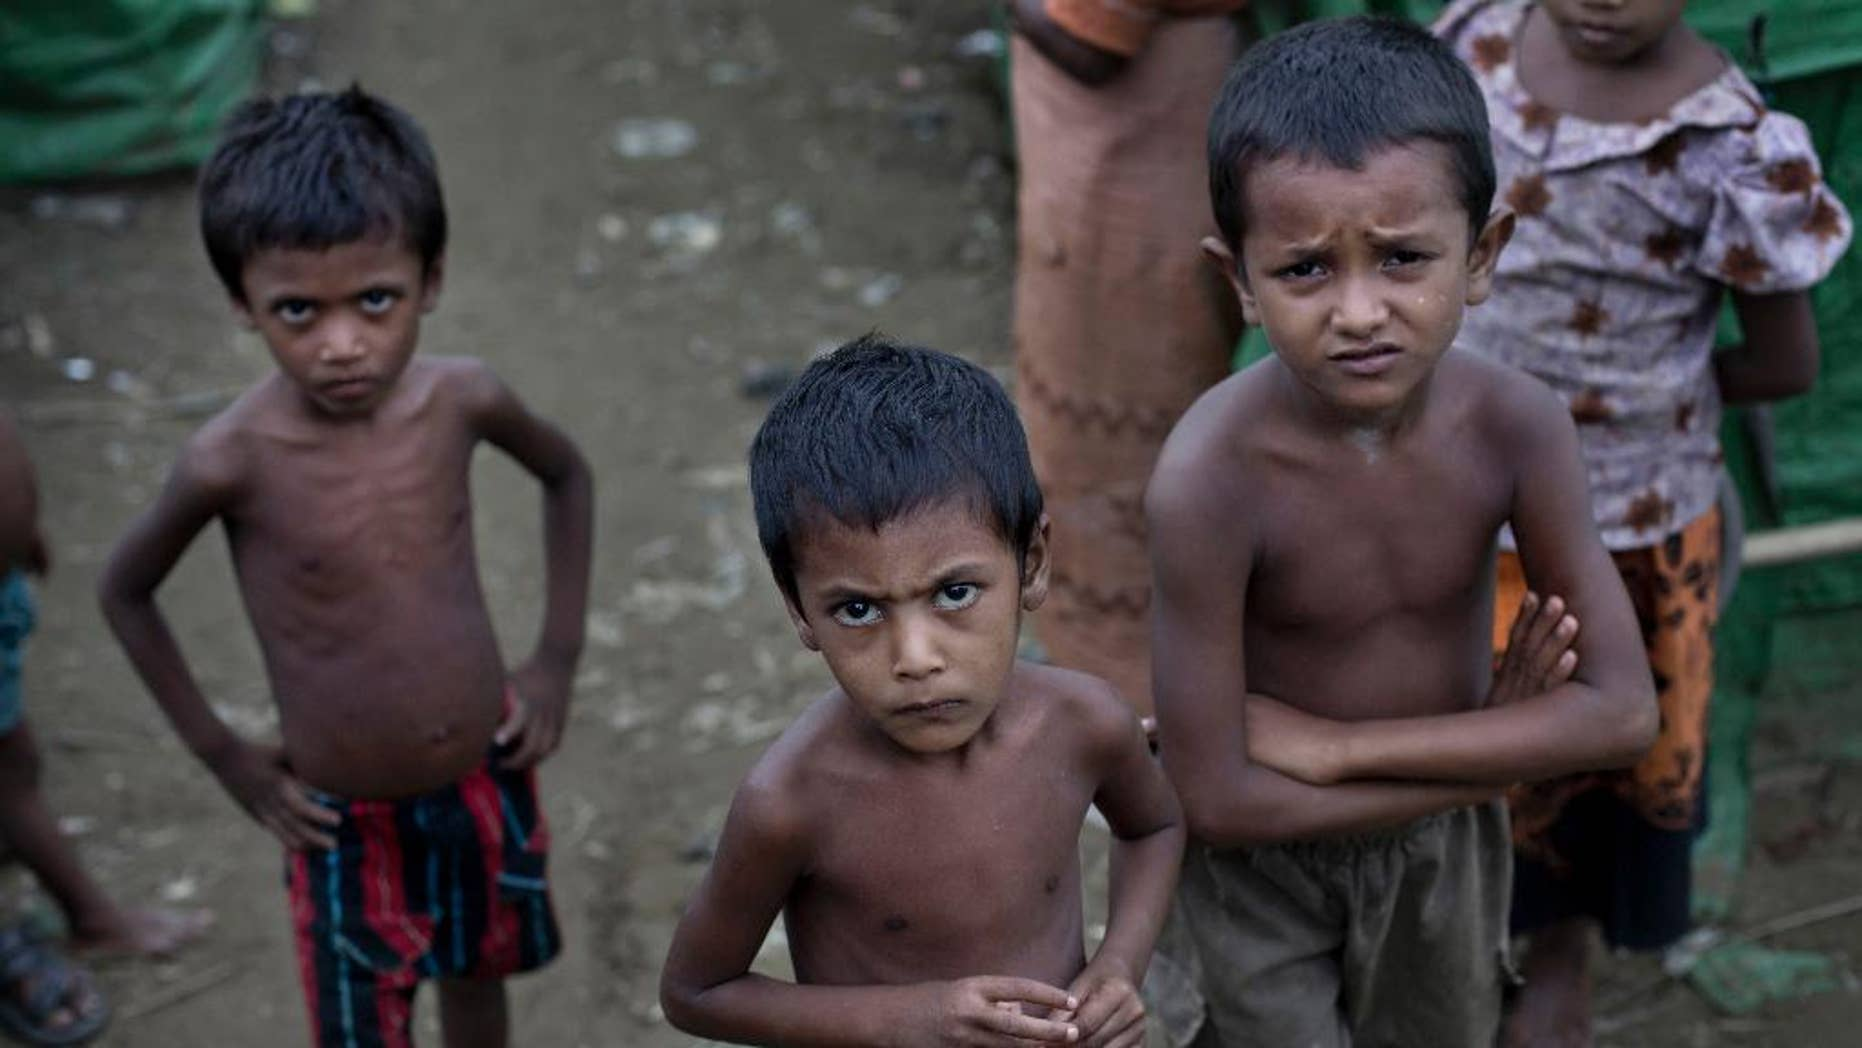 FILE - In this June 24 2014, file photo, Rohingya children gather at the Dar Paing camp for Muslim refugees, north of Sittwe, western Rakhine state, Myanmar. Activists this week have sent an open letter asking the major corporate investor conglomerate Unilever, which owns two factories near the capital Yangon, to speak out against the country's treatment of its Rohingya minority. (AP Photo/ Gemunu Amarasinghe, File)